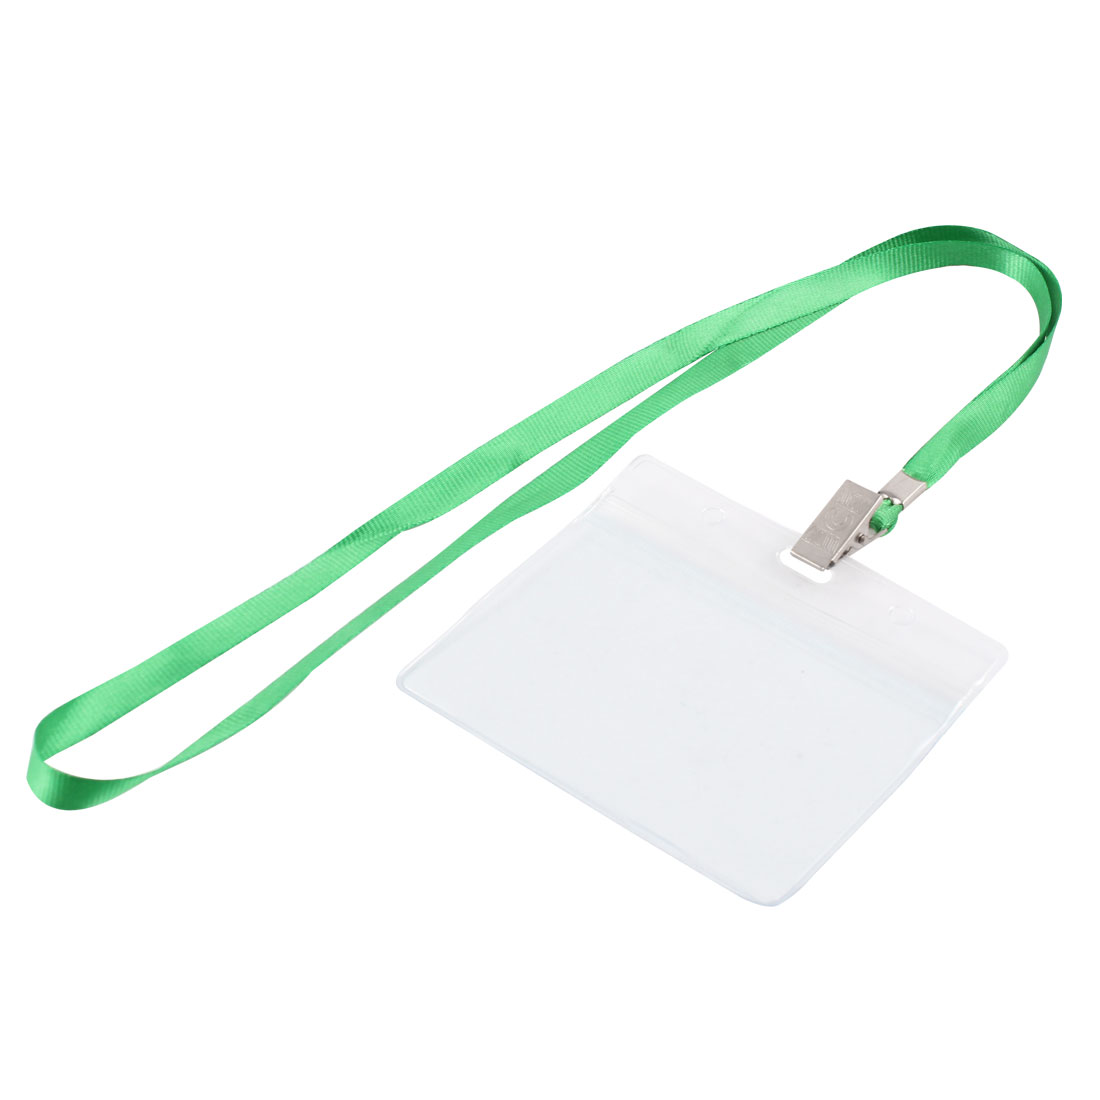 Clear Plastic Horizontal ID Office Exhibition Badge Card Holder w Green Lanyard